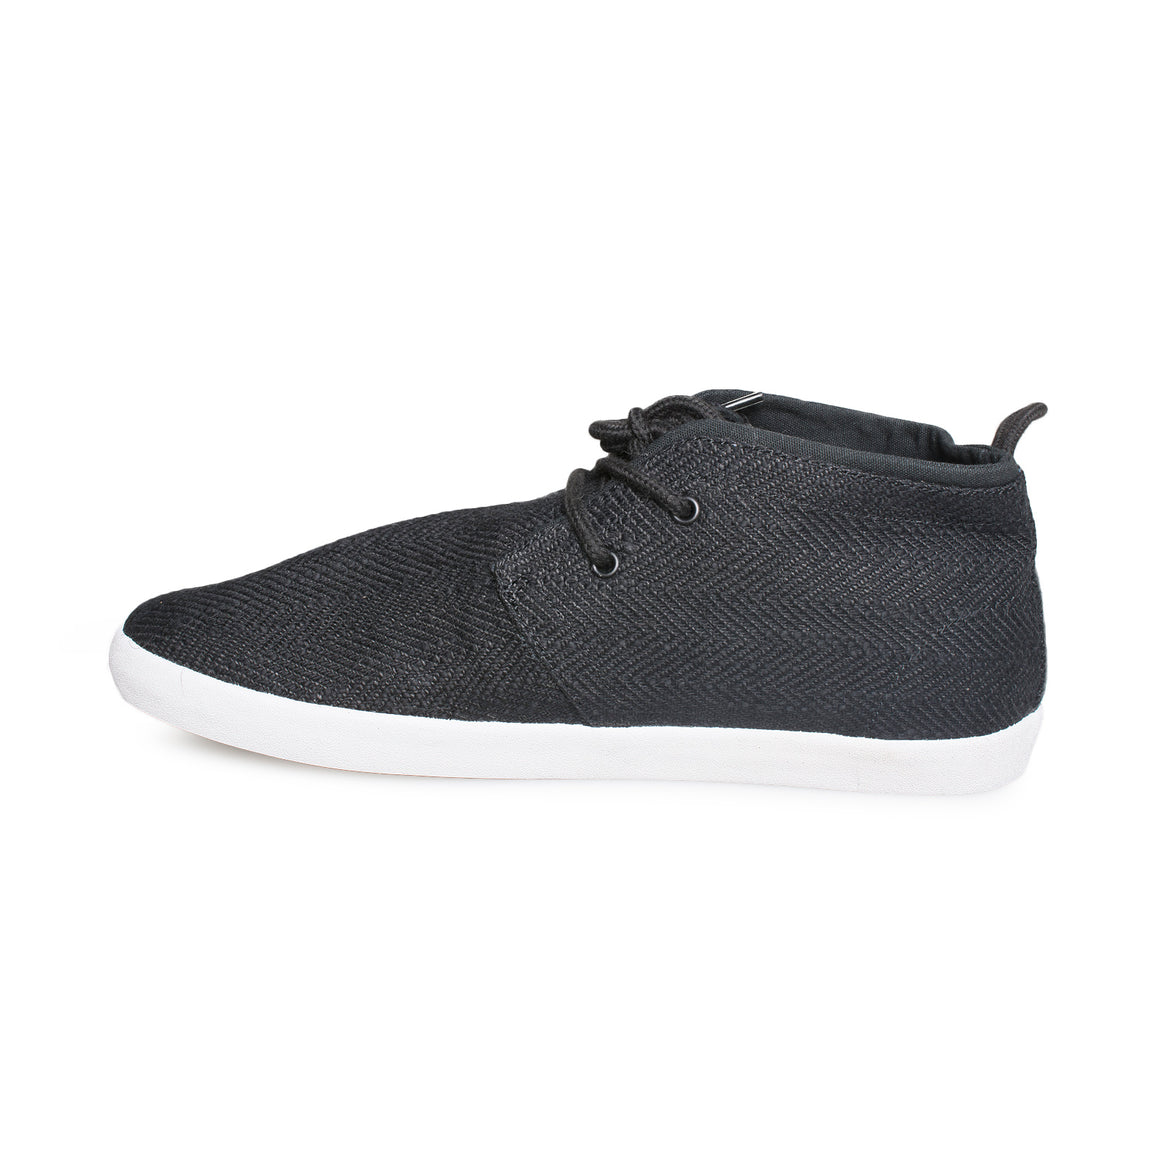 SANUK Cargo TX Black Shoes - Men's